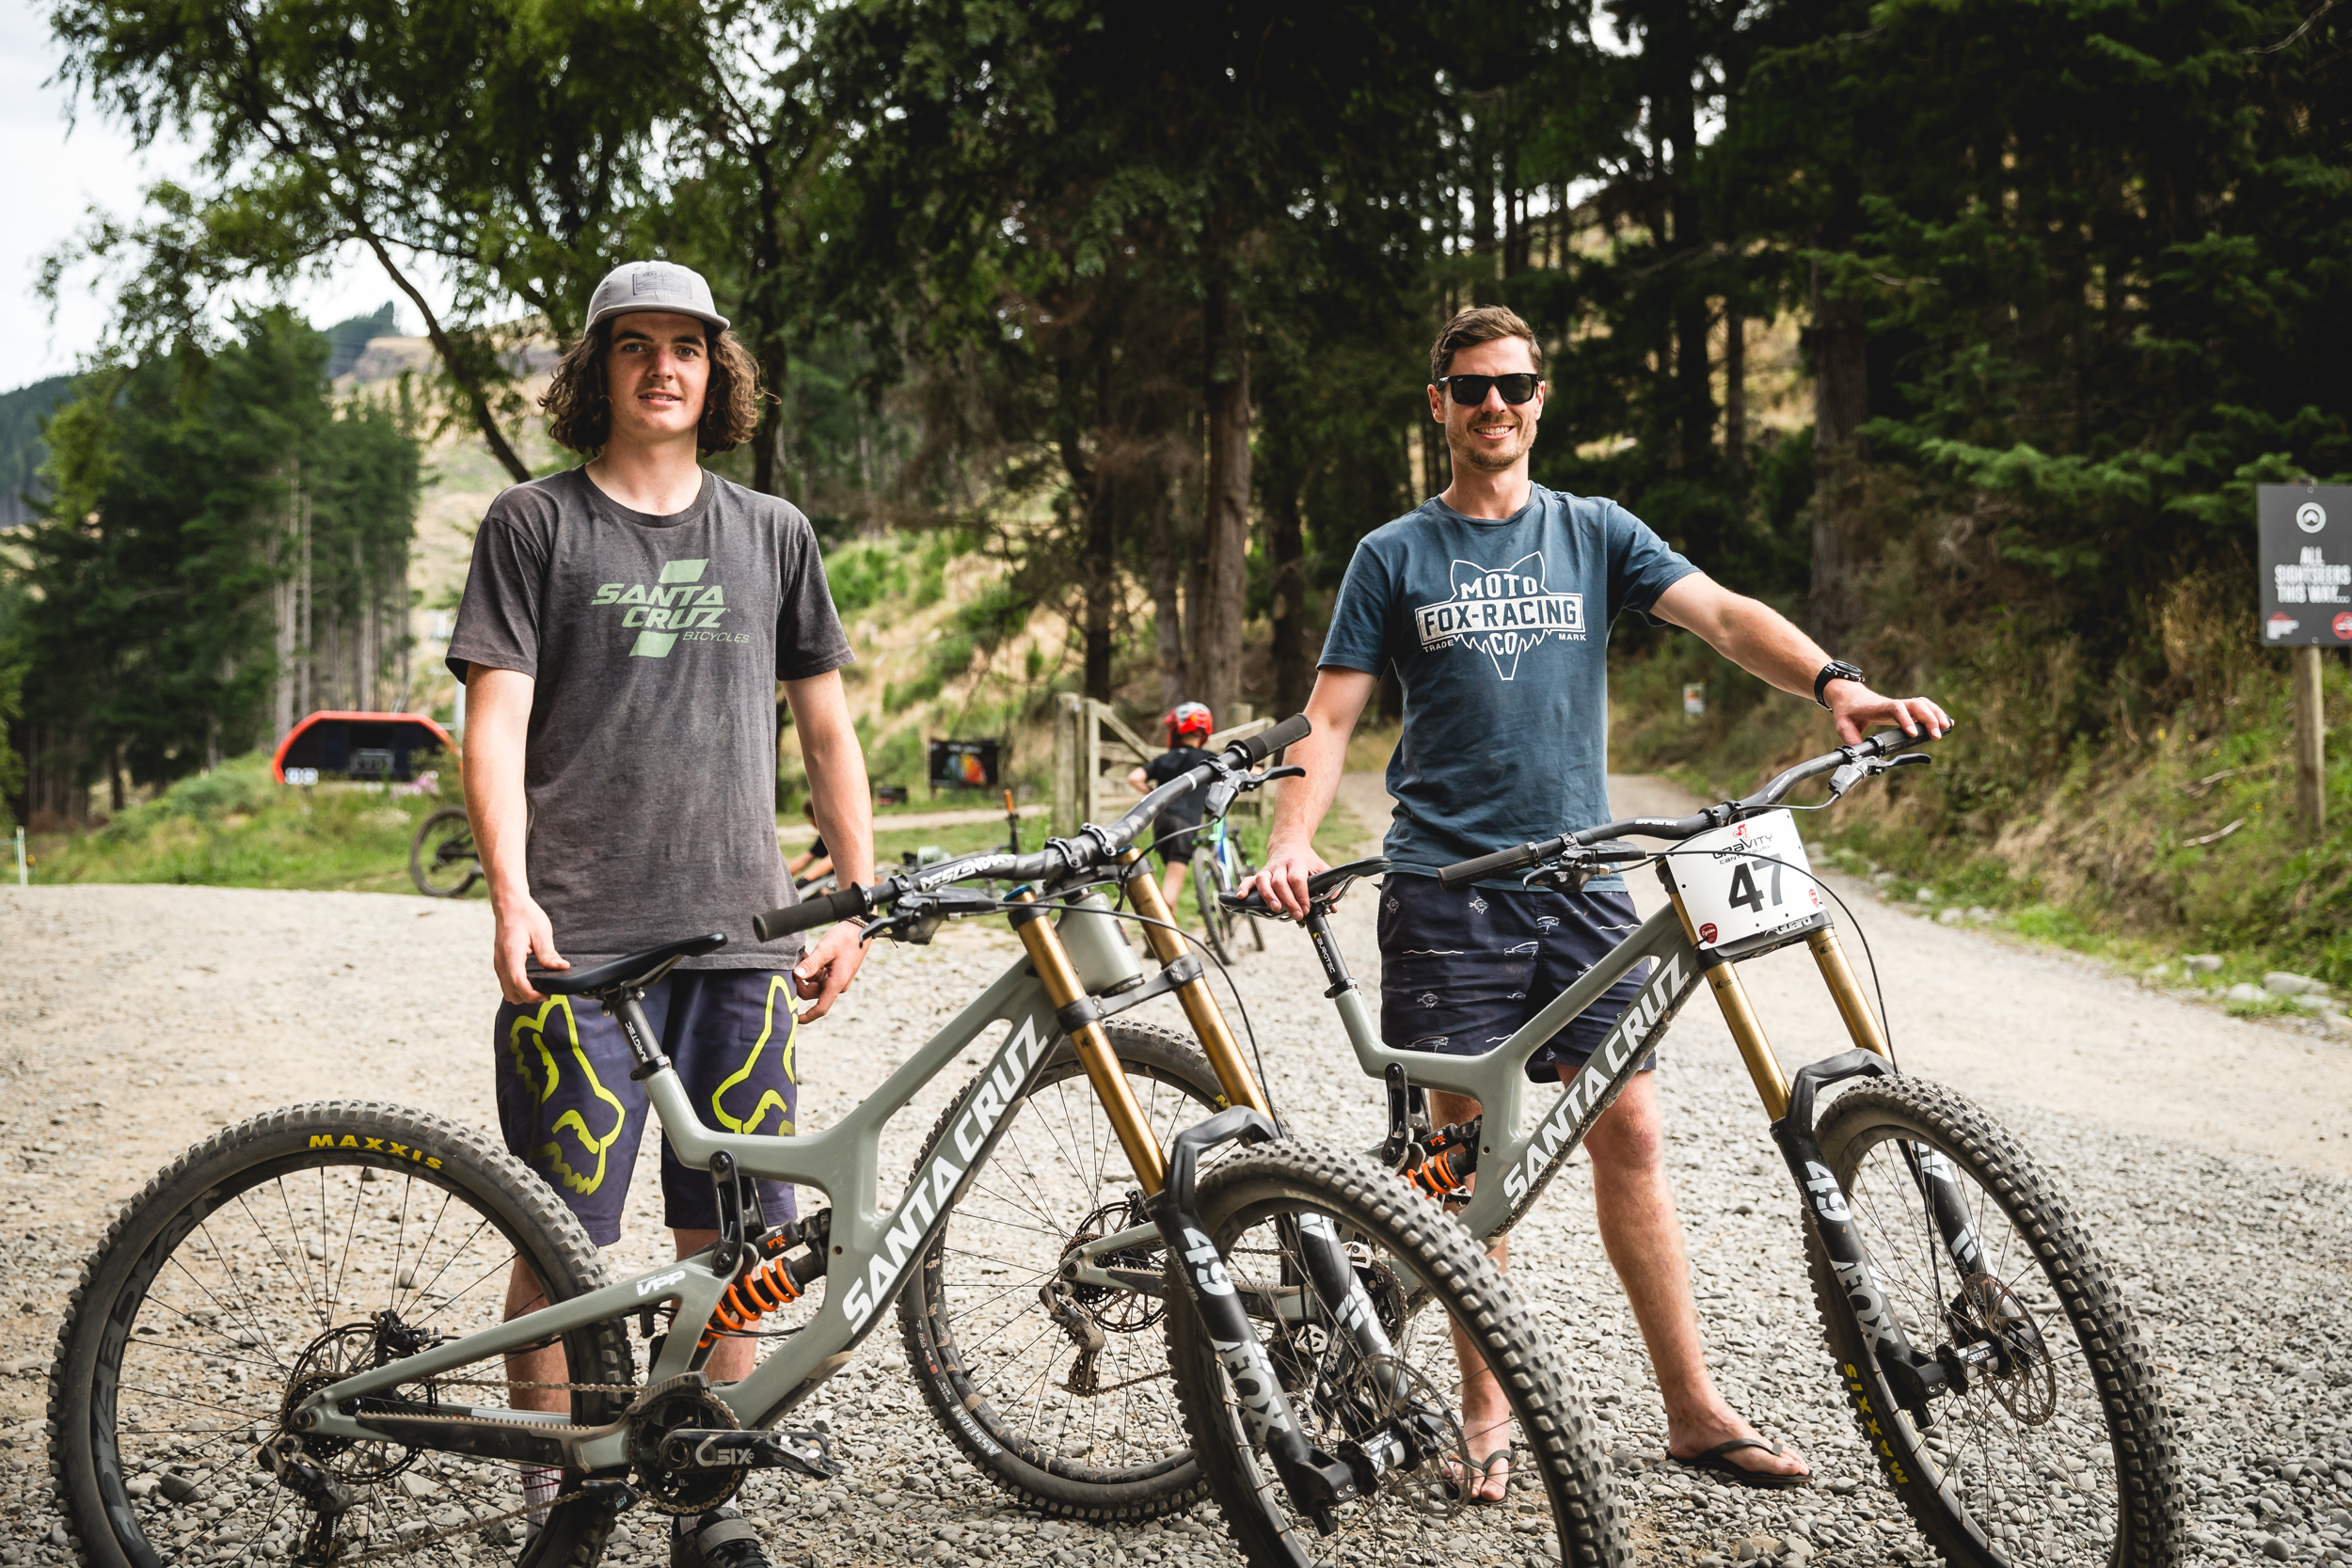 A new era for Kiwi downhill racing - first outings for Finn Hawkesby-Browne and Kieran Bennett on the new Santa Cruz V10 29 at the NZ Open. - Photo   Cameron Mackenzie